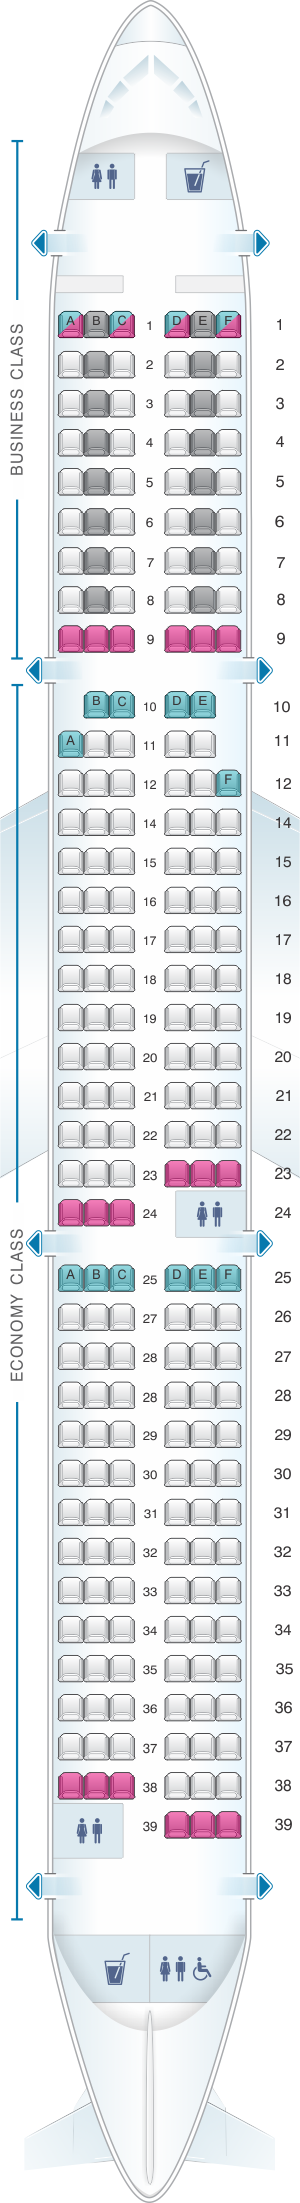 Seat map for SWISS Airbus A321 100/200